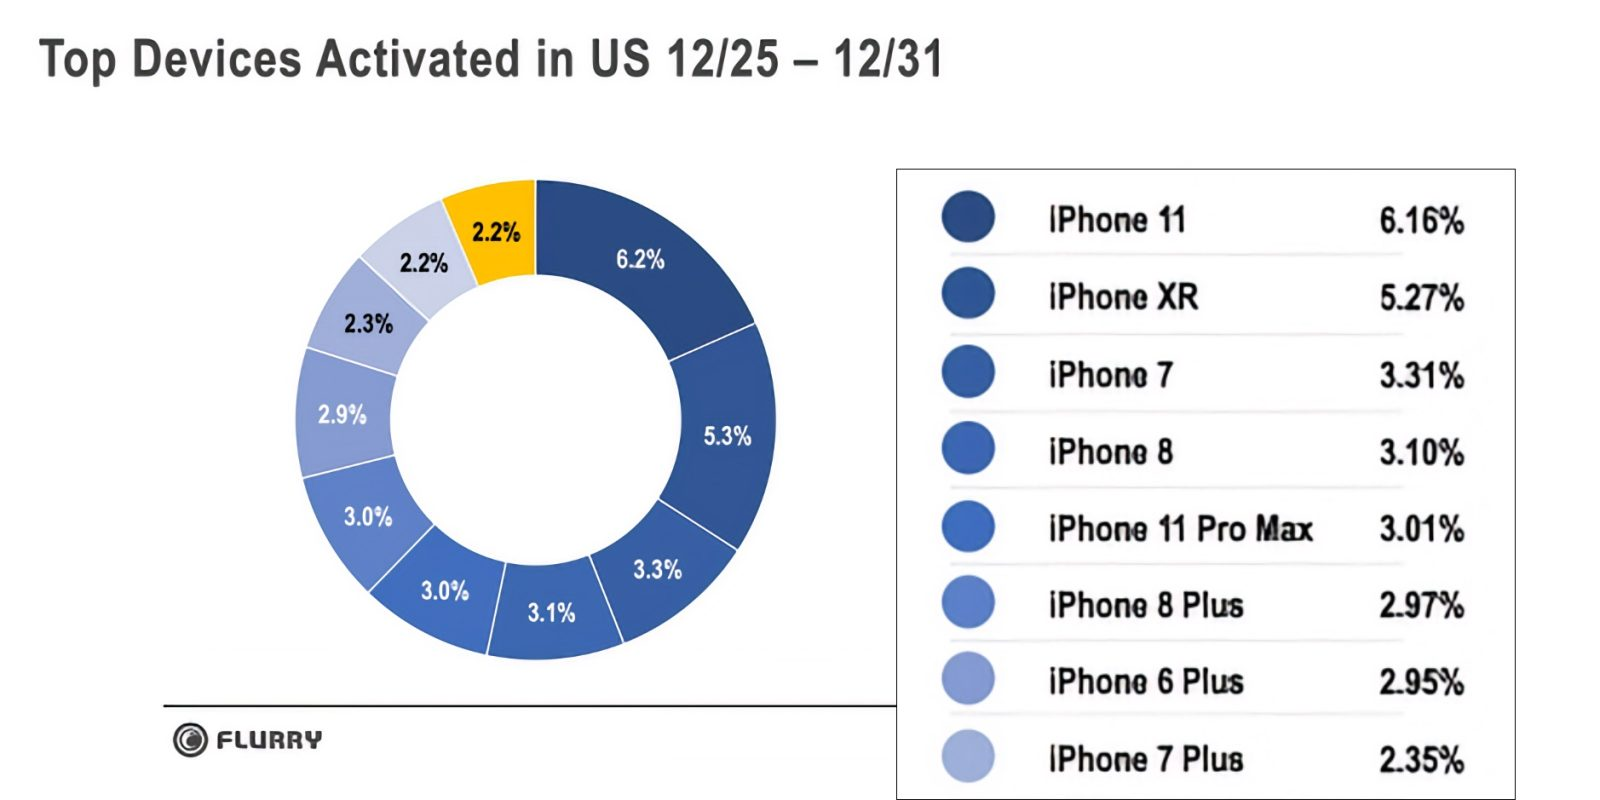 Apple wins Christmas: iPhone claims top 9 spots for mobile device activations in the US